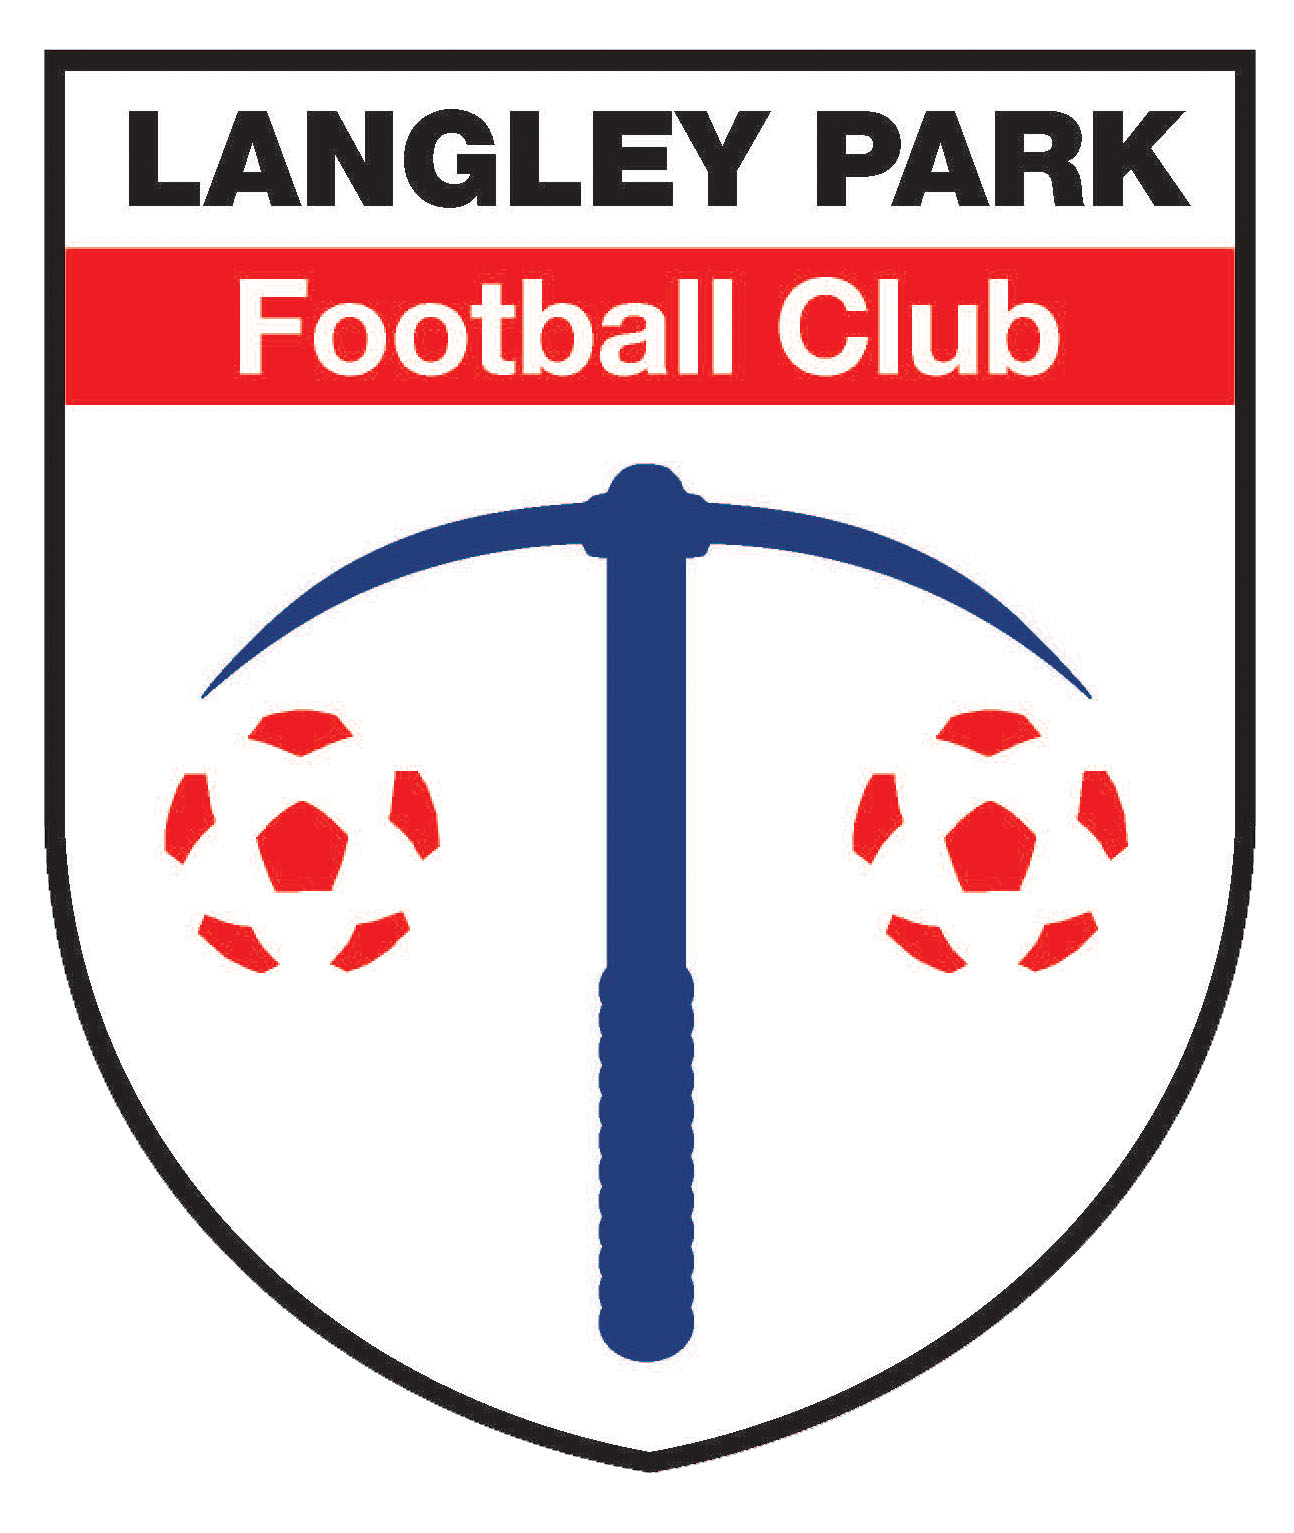 Langley Park Football Club